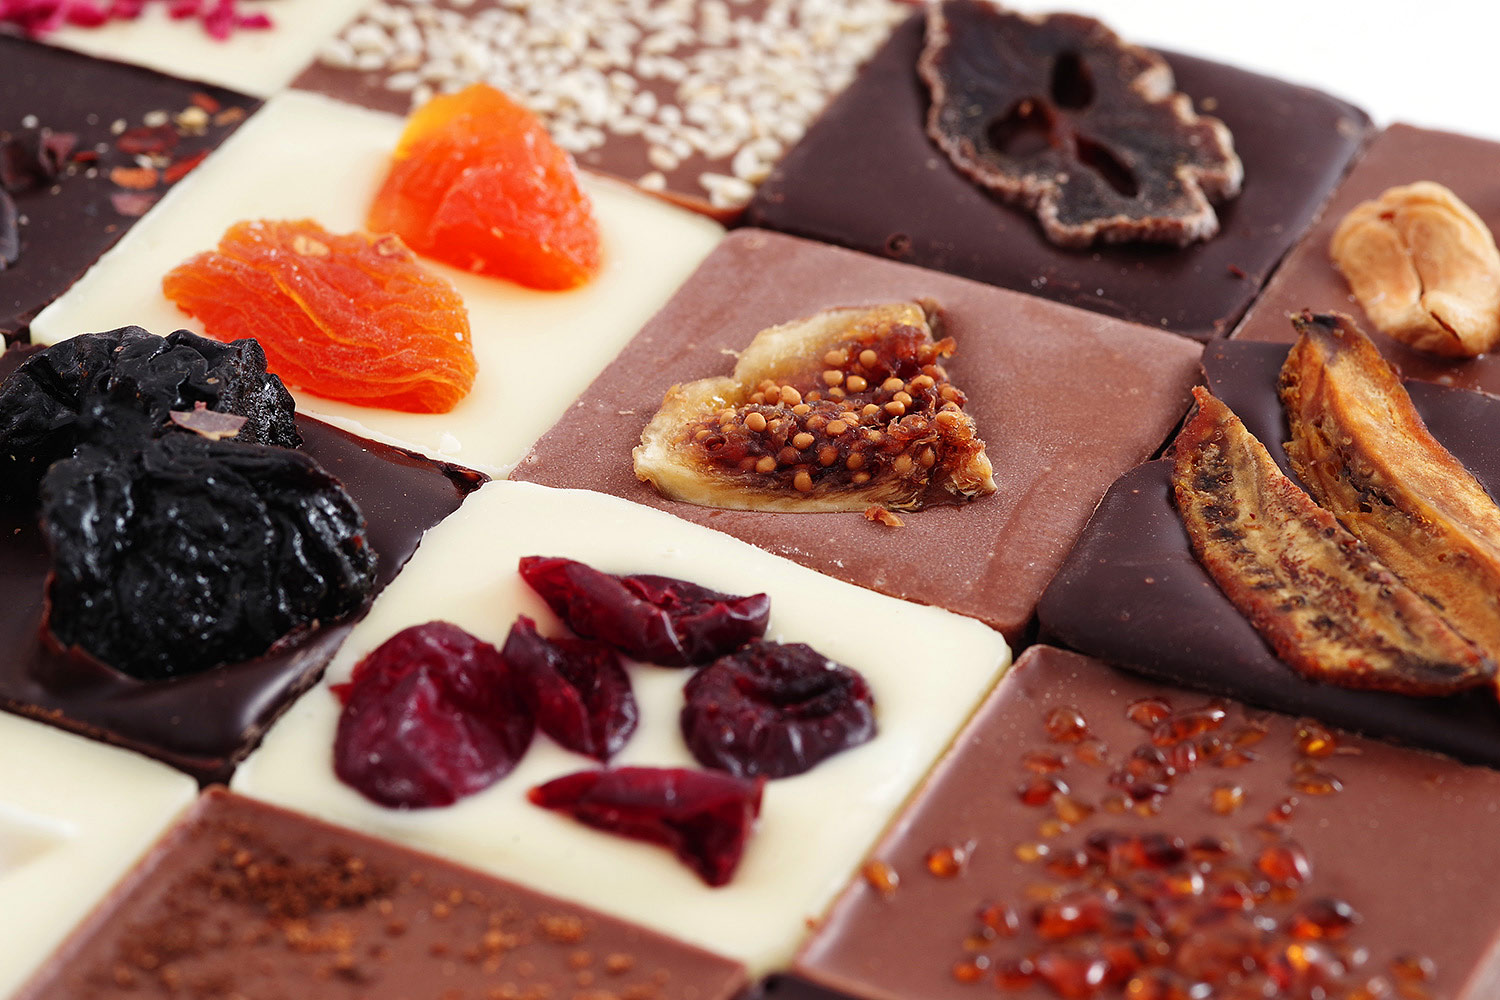 Milk chocolate with figs, white chocolate with dried apricots, cranberries, dark chocolate with prunes, banana, persimmon, salted caramel. Gift Altbank.